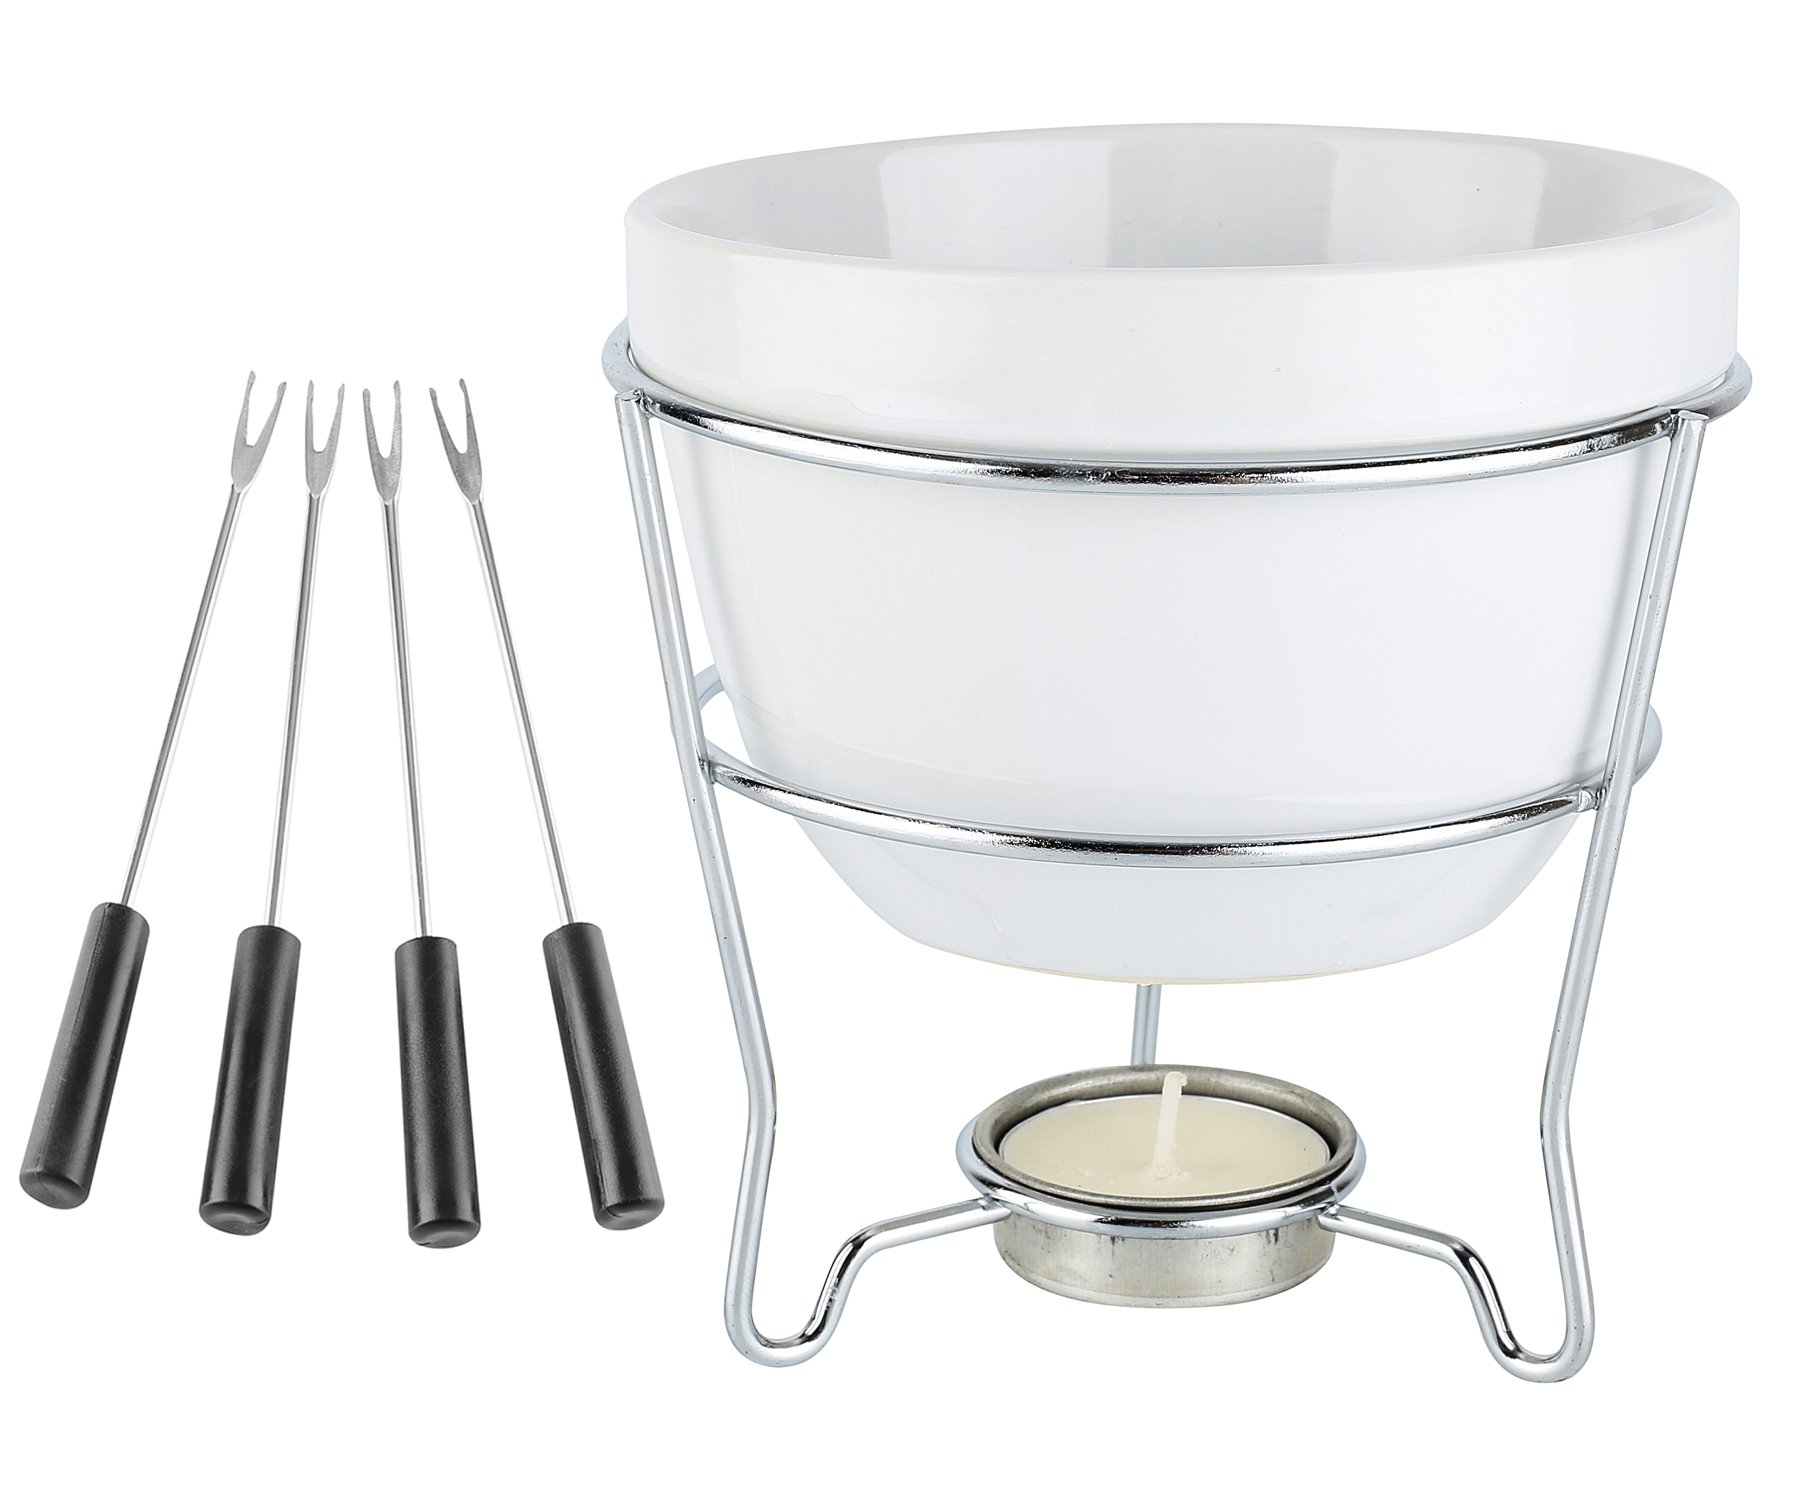 Elegant Chocolate Fondue Bowl Set with 4 Dipping Forks & Tea Light Holder – For the Perfect Melted, Chocolate & Cheese Serving – Even Heat Distribution - Dishwasher, Microwave and Oven Safe 6 oz. by home ess. (Image #2)